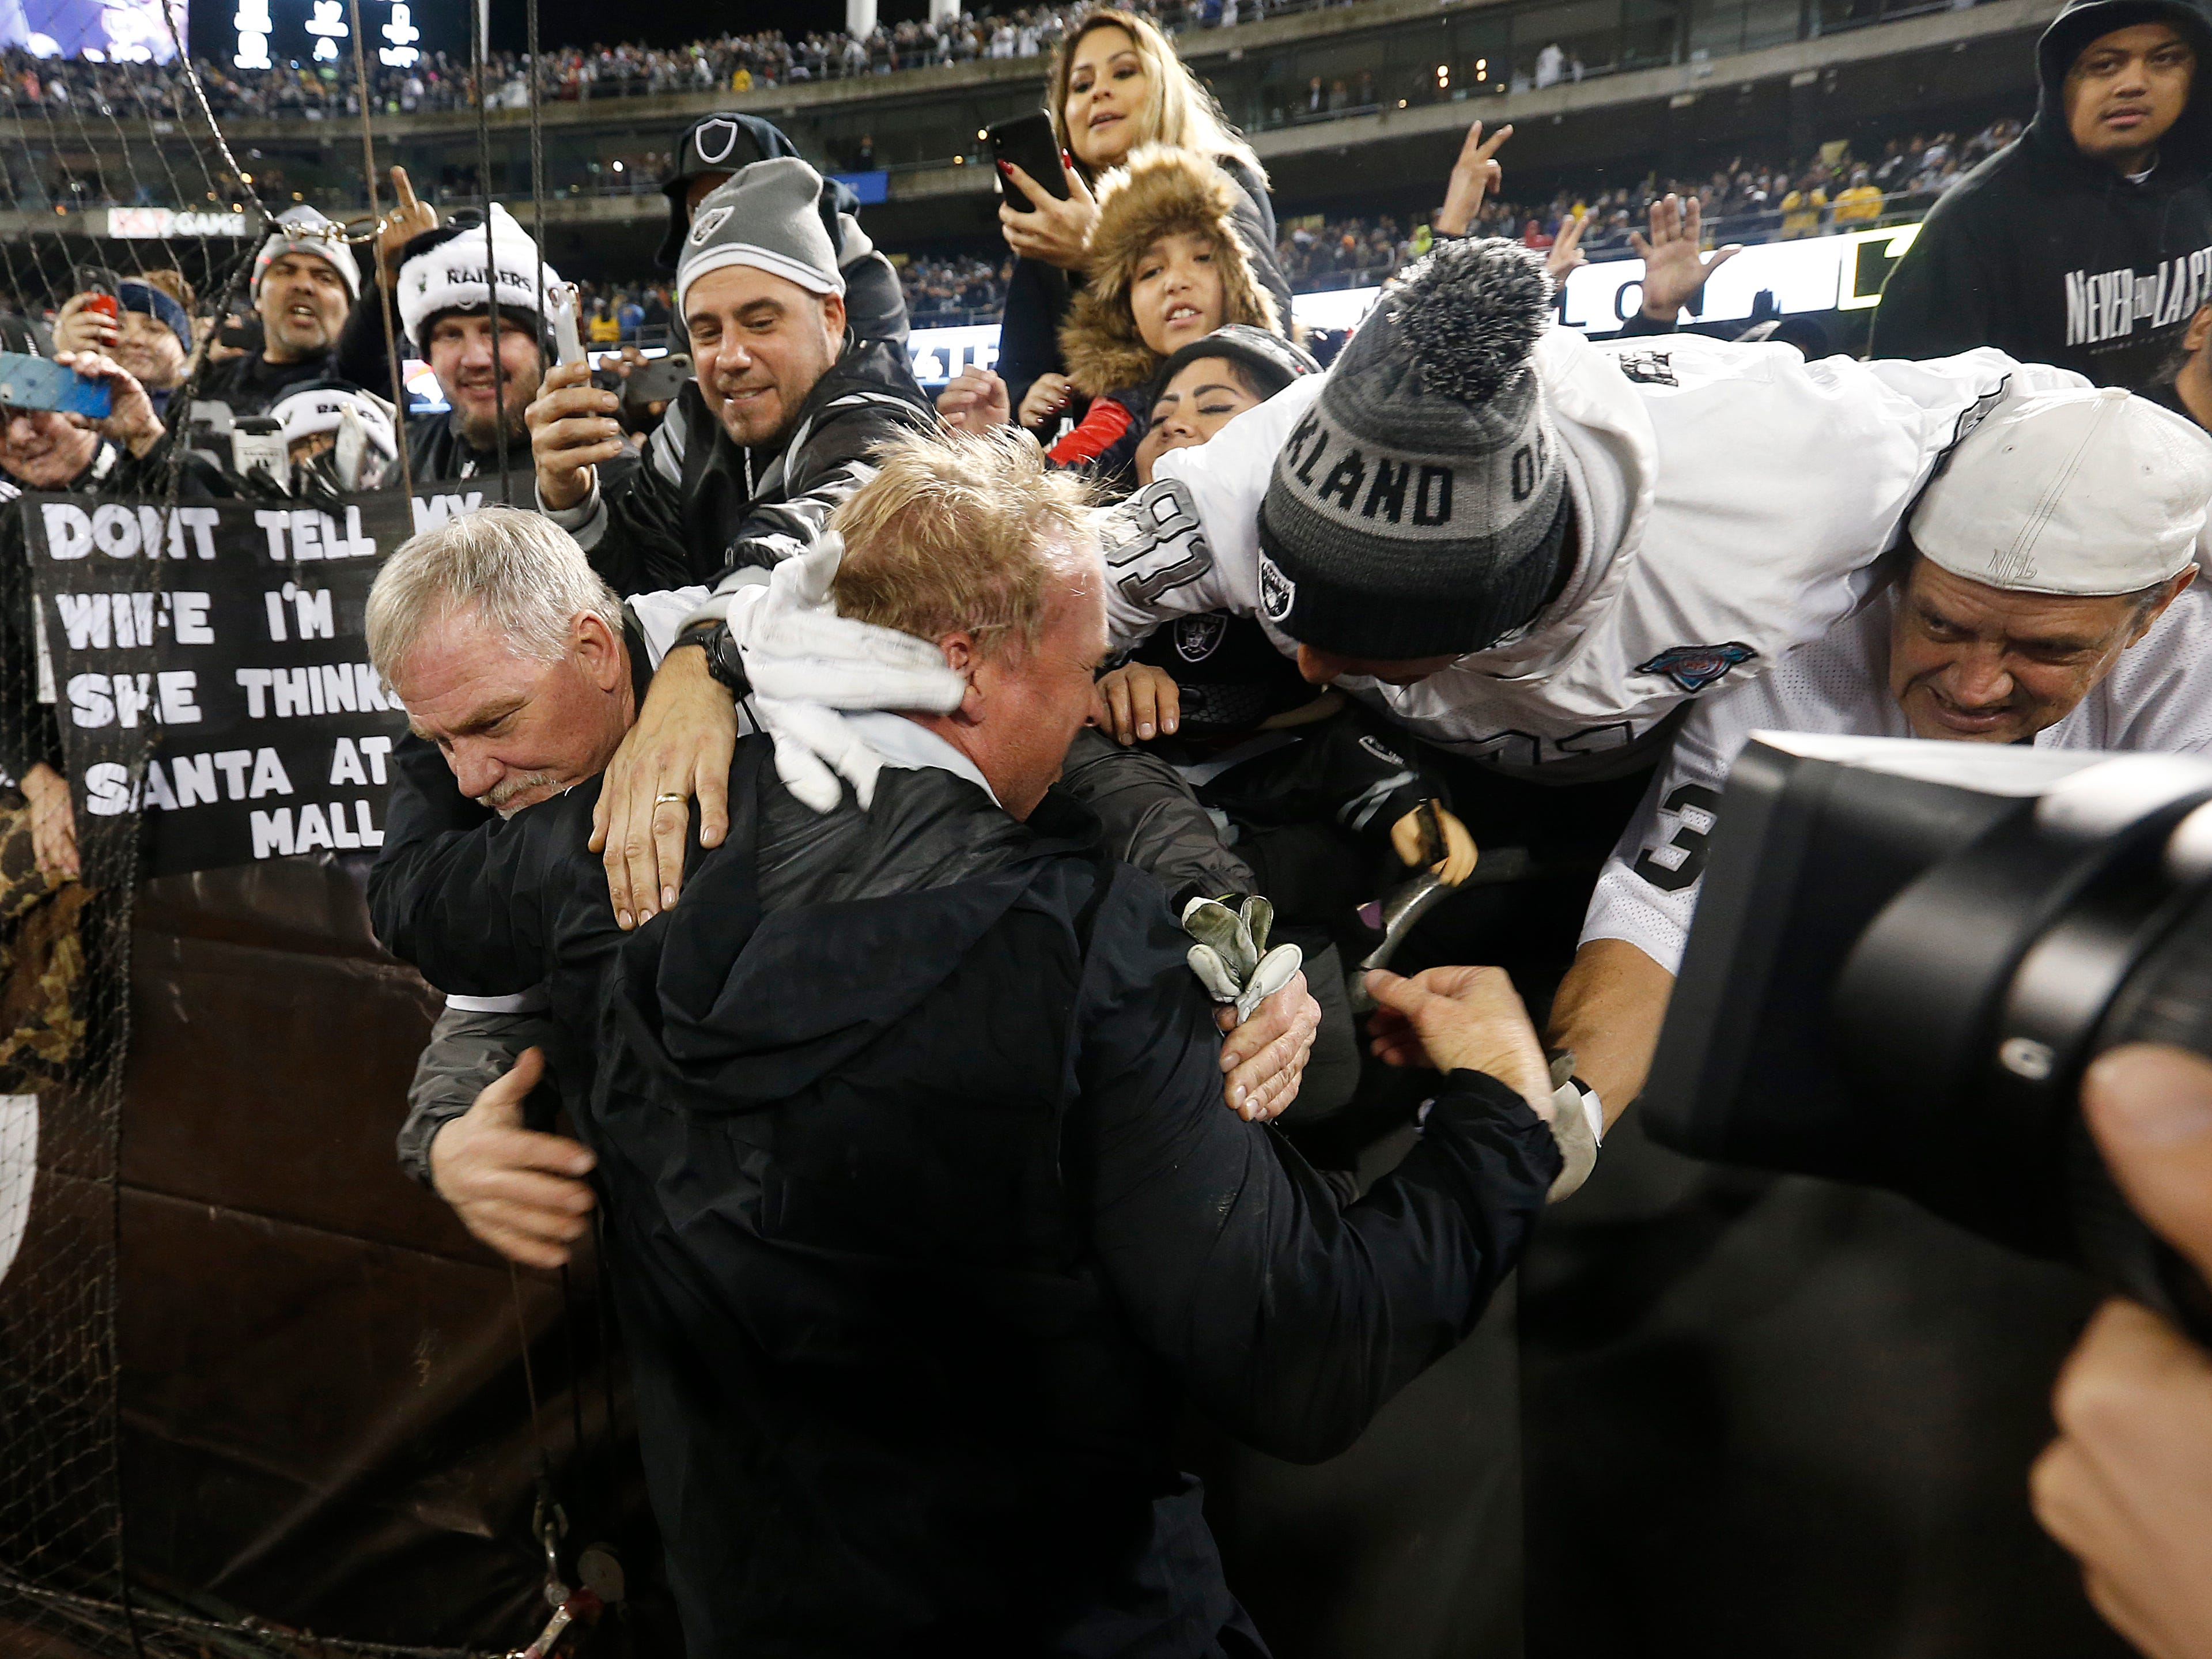 Raiders head coach Jon Gruden hugs fans after Monday night's game against the Denver Broncos in Oakland.